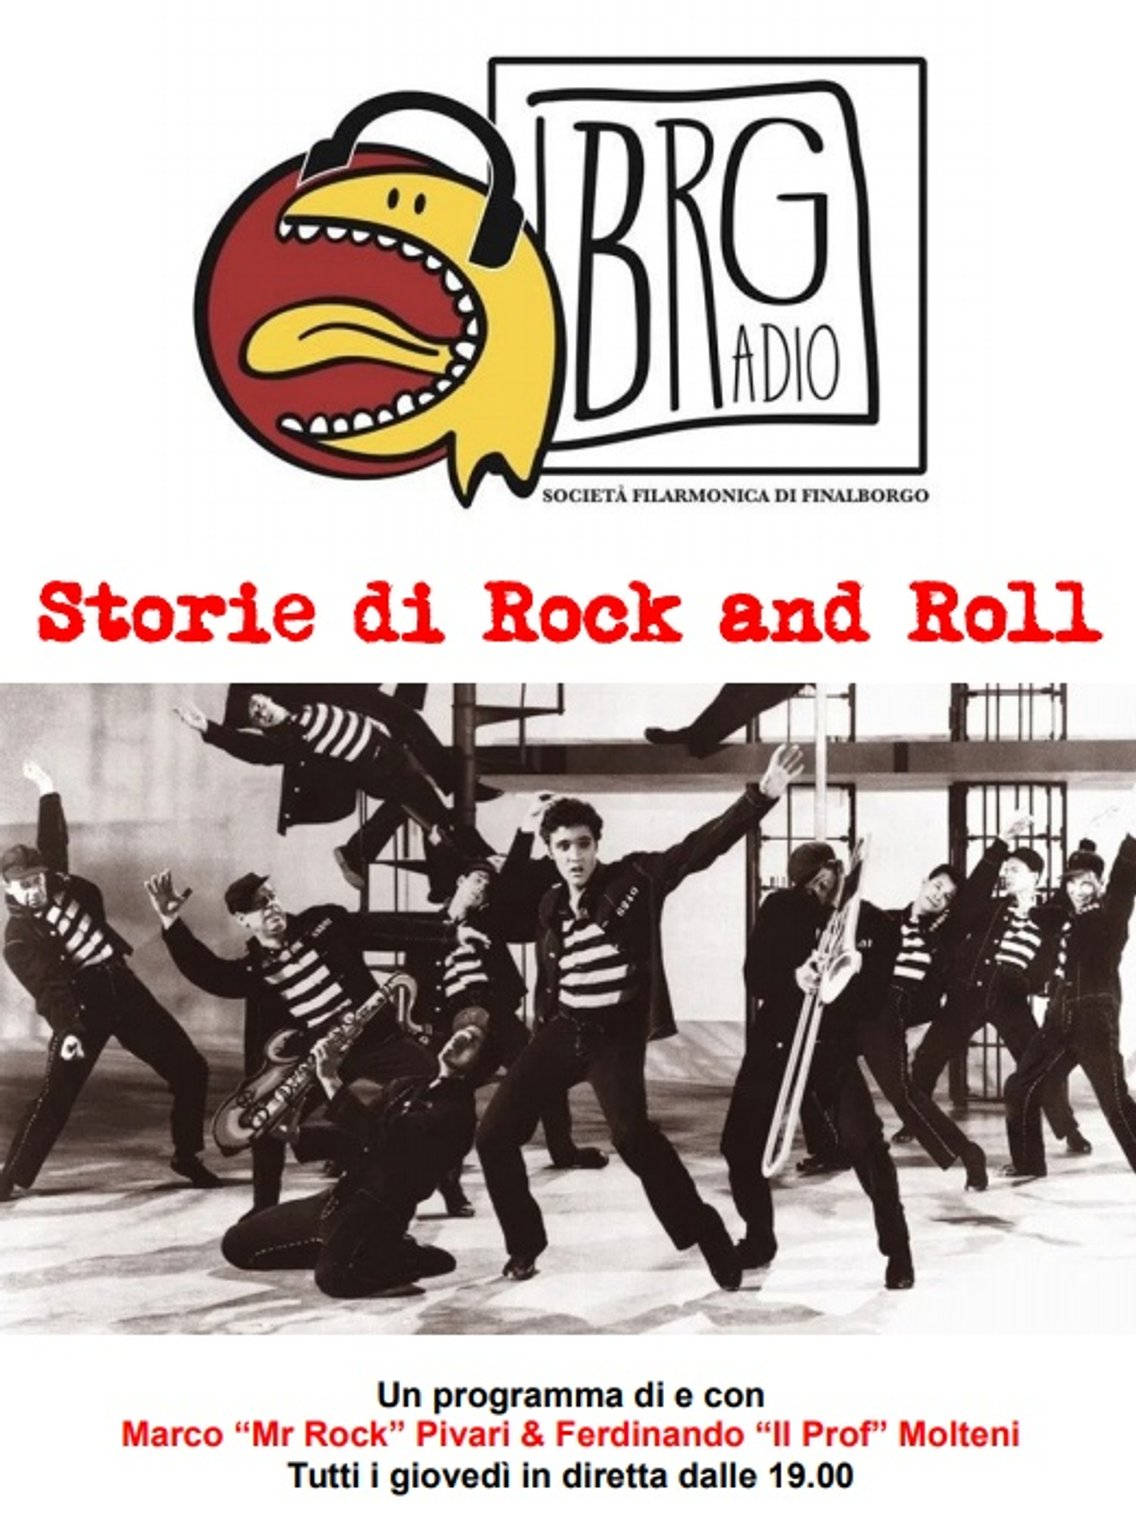 Storie di Rock and Roll - Cover Image